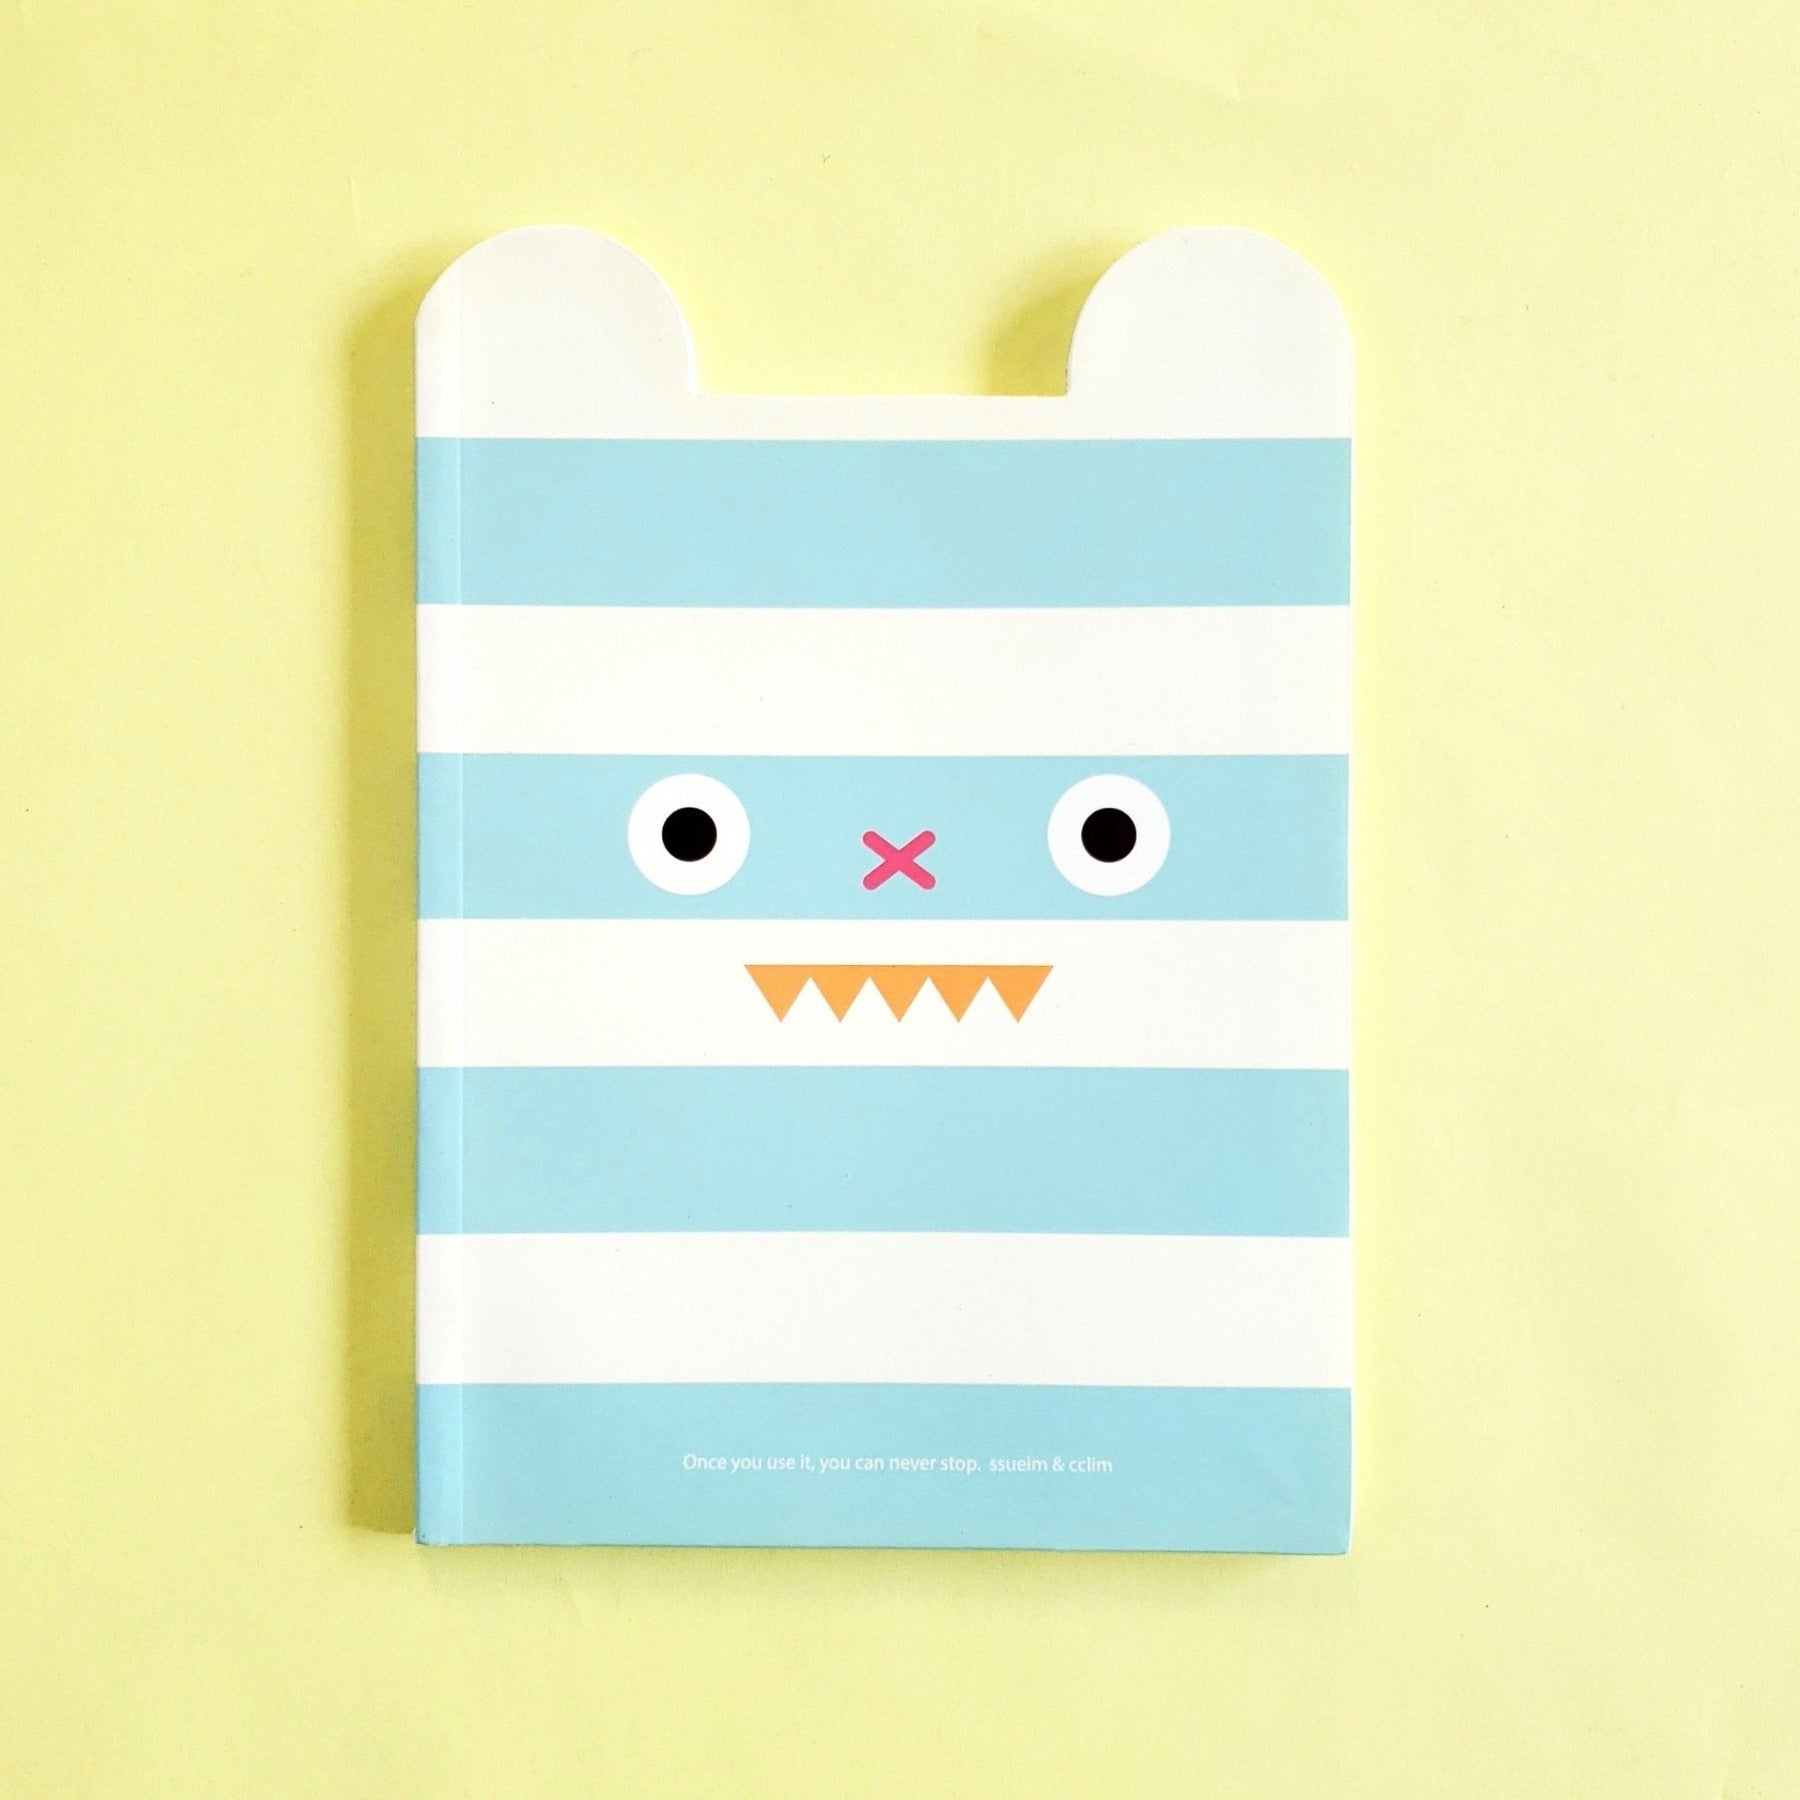 cute korean stationery by ssueim & cclim: funny mouth notebook with blue stripes (front cover)